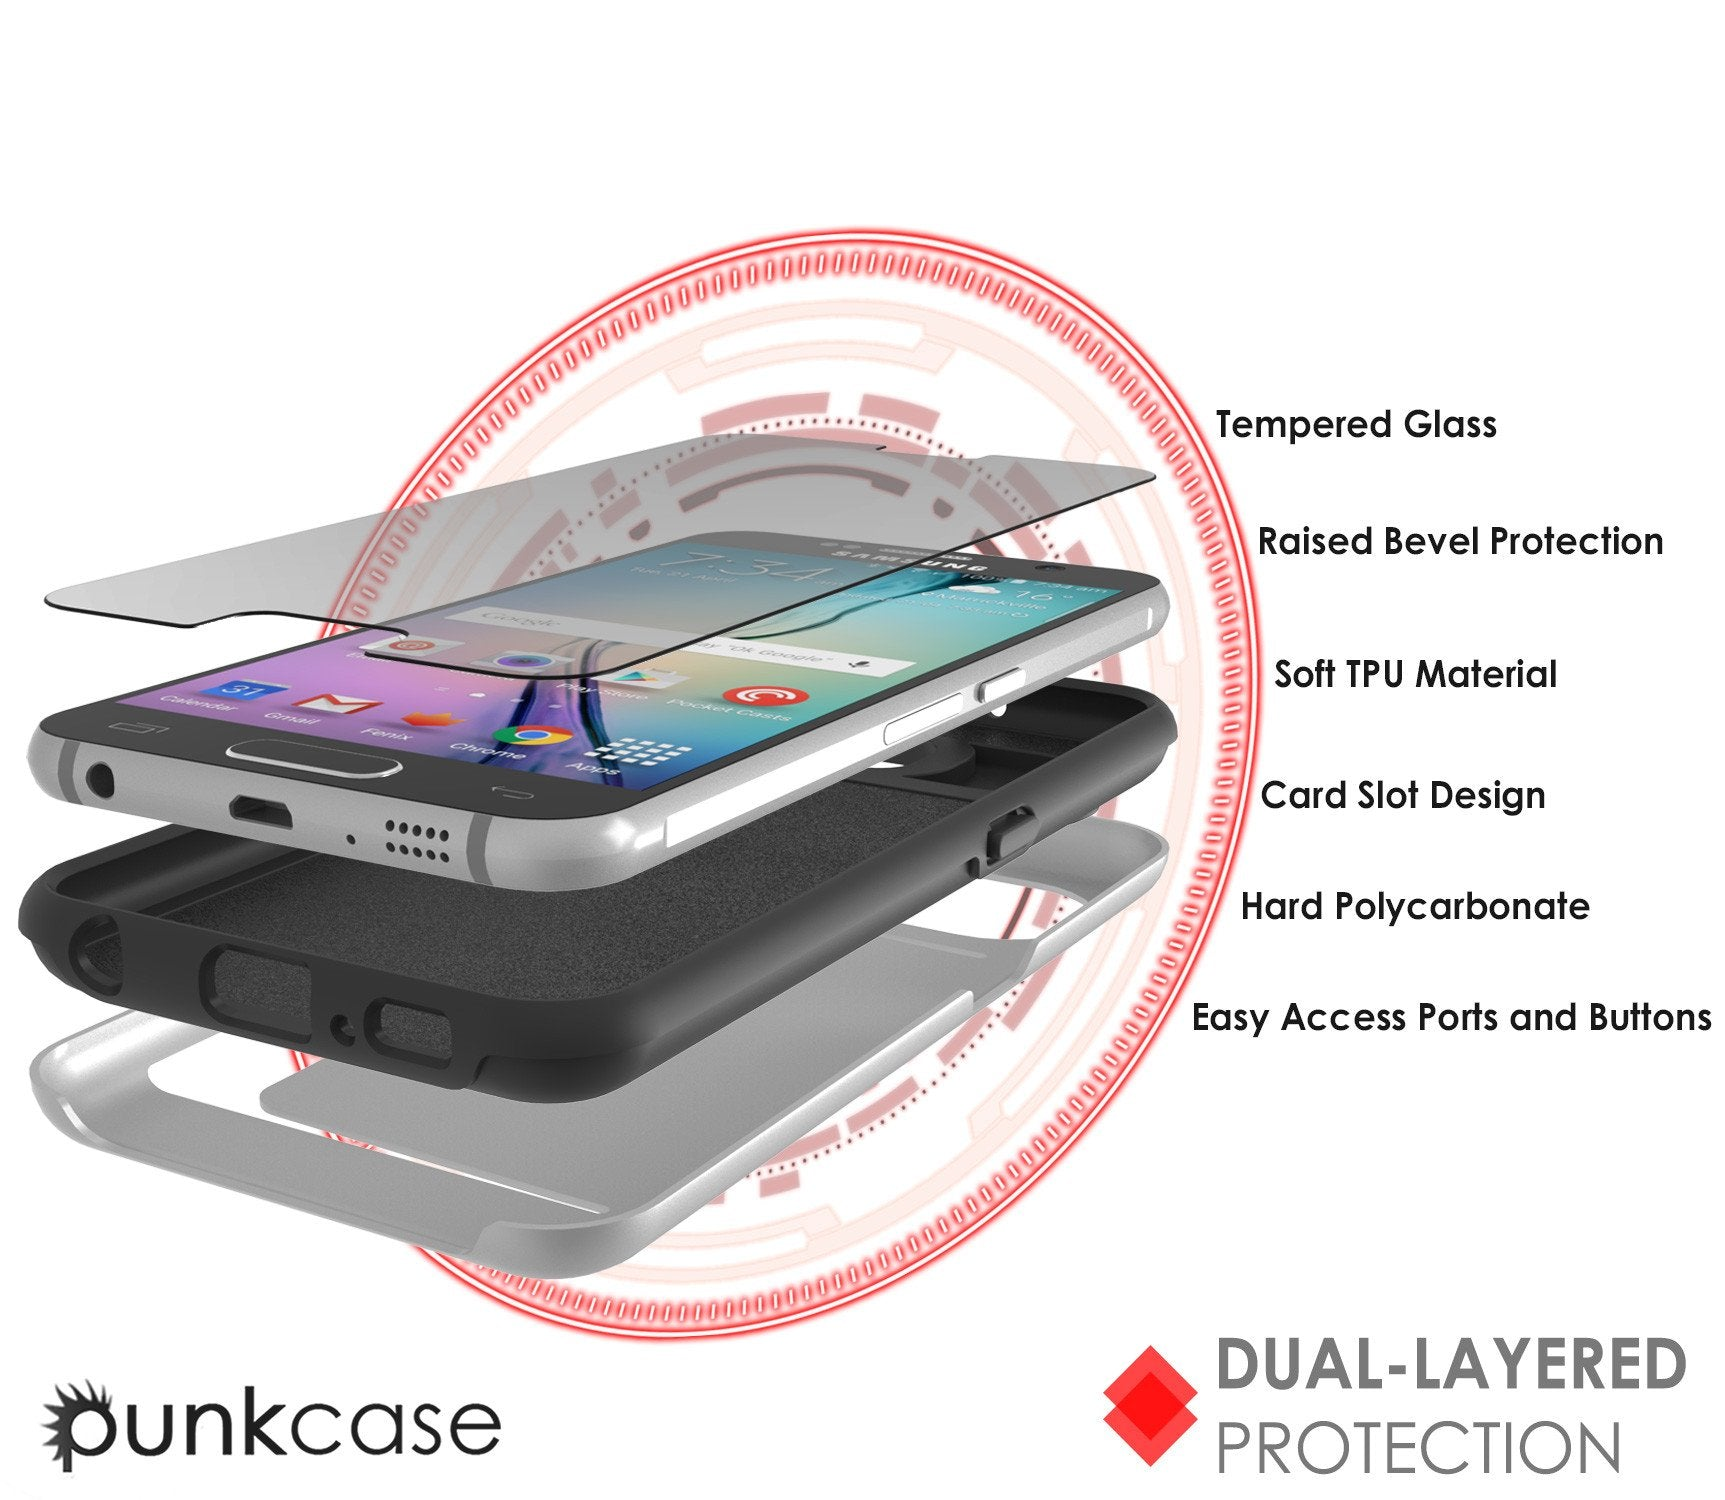 Galaxy s6 Case PunkCase CLUTCH Silver Series Slim Armor Soft Cover Case w/ Tempered Glass - PunkCase NZ